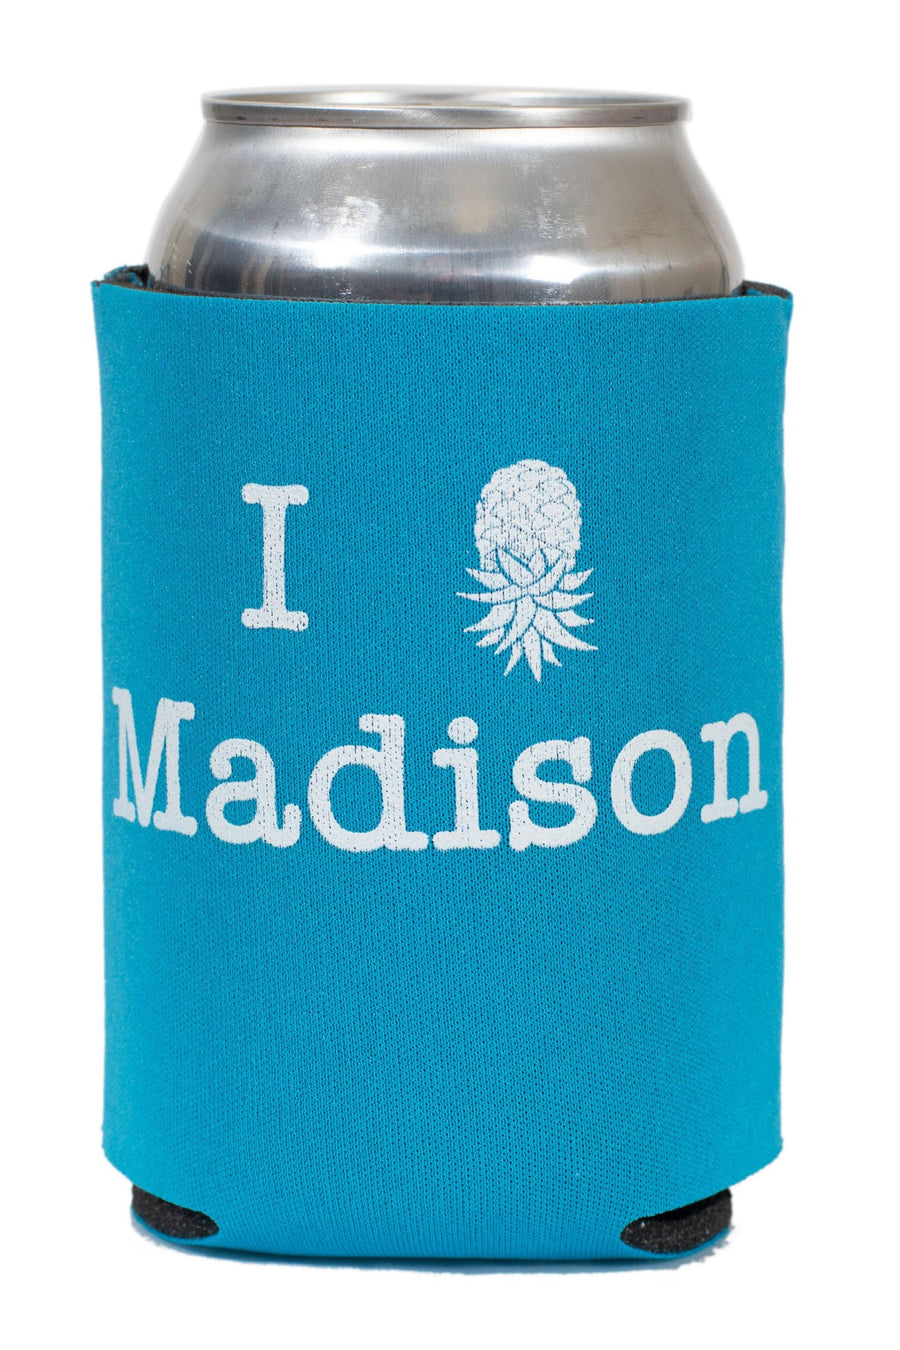 I Pineapple Madison Drink Holder 2